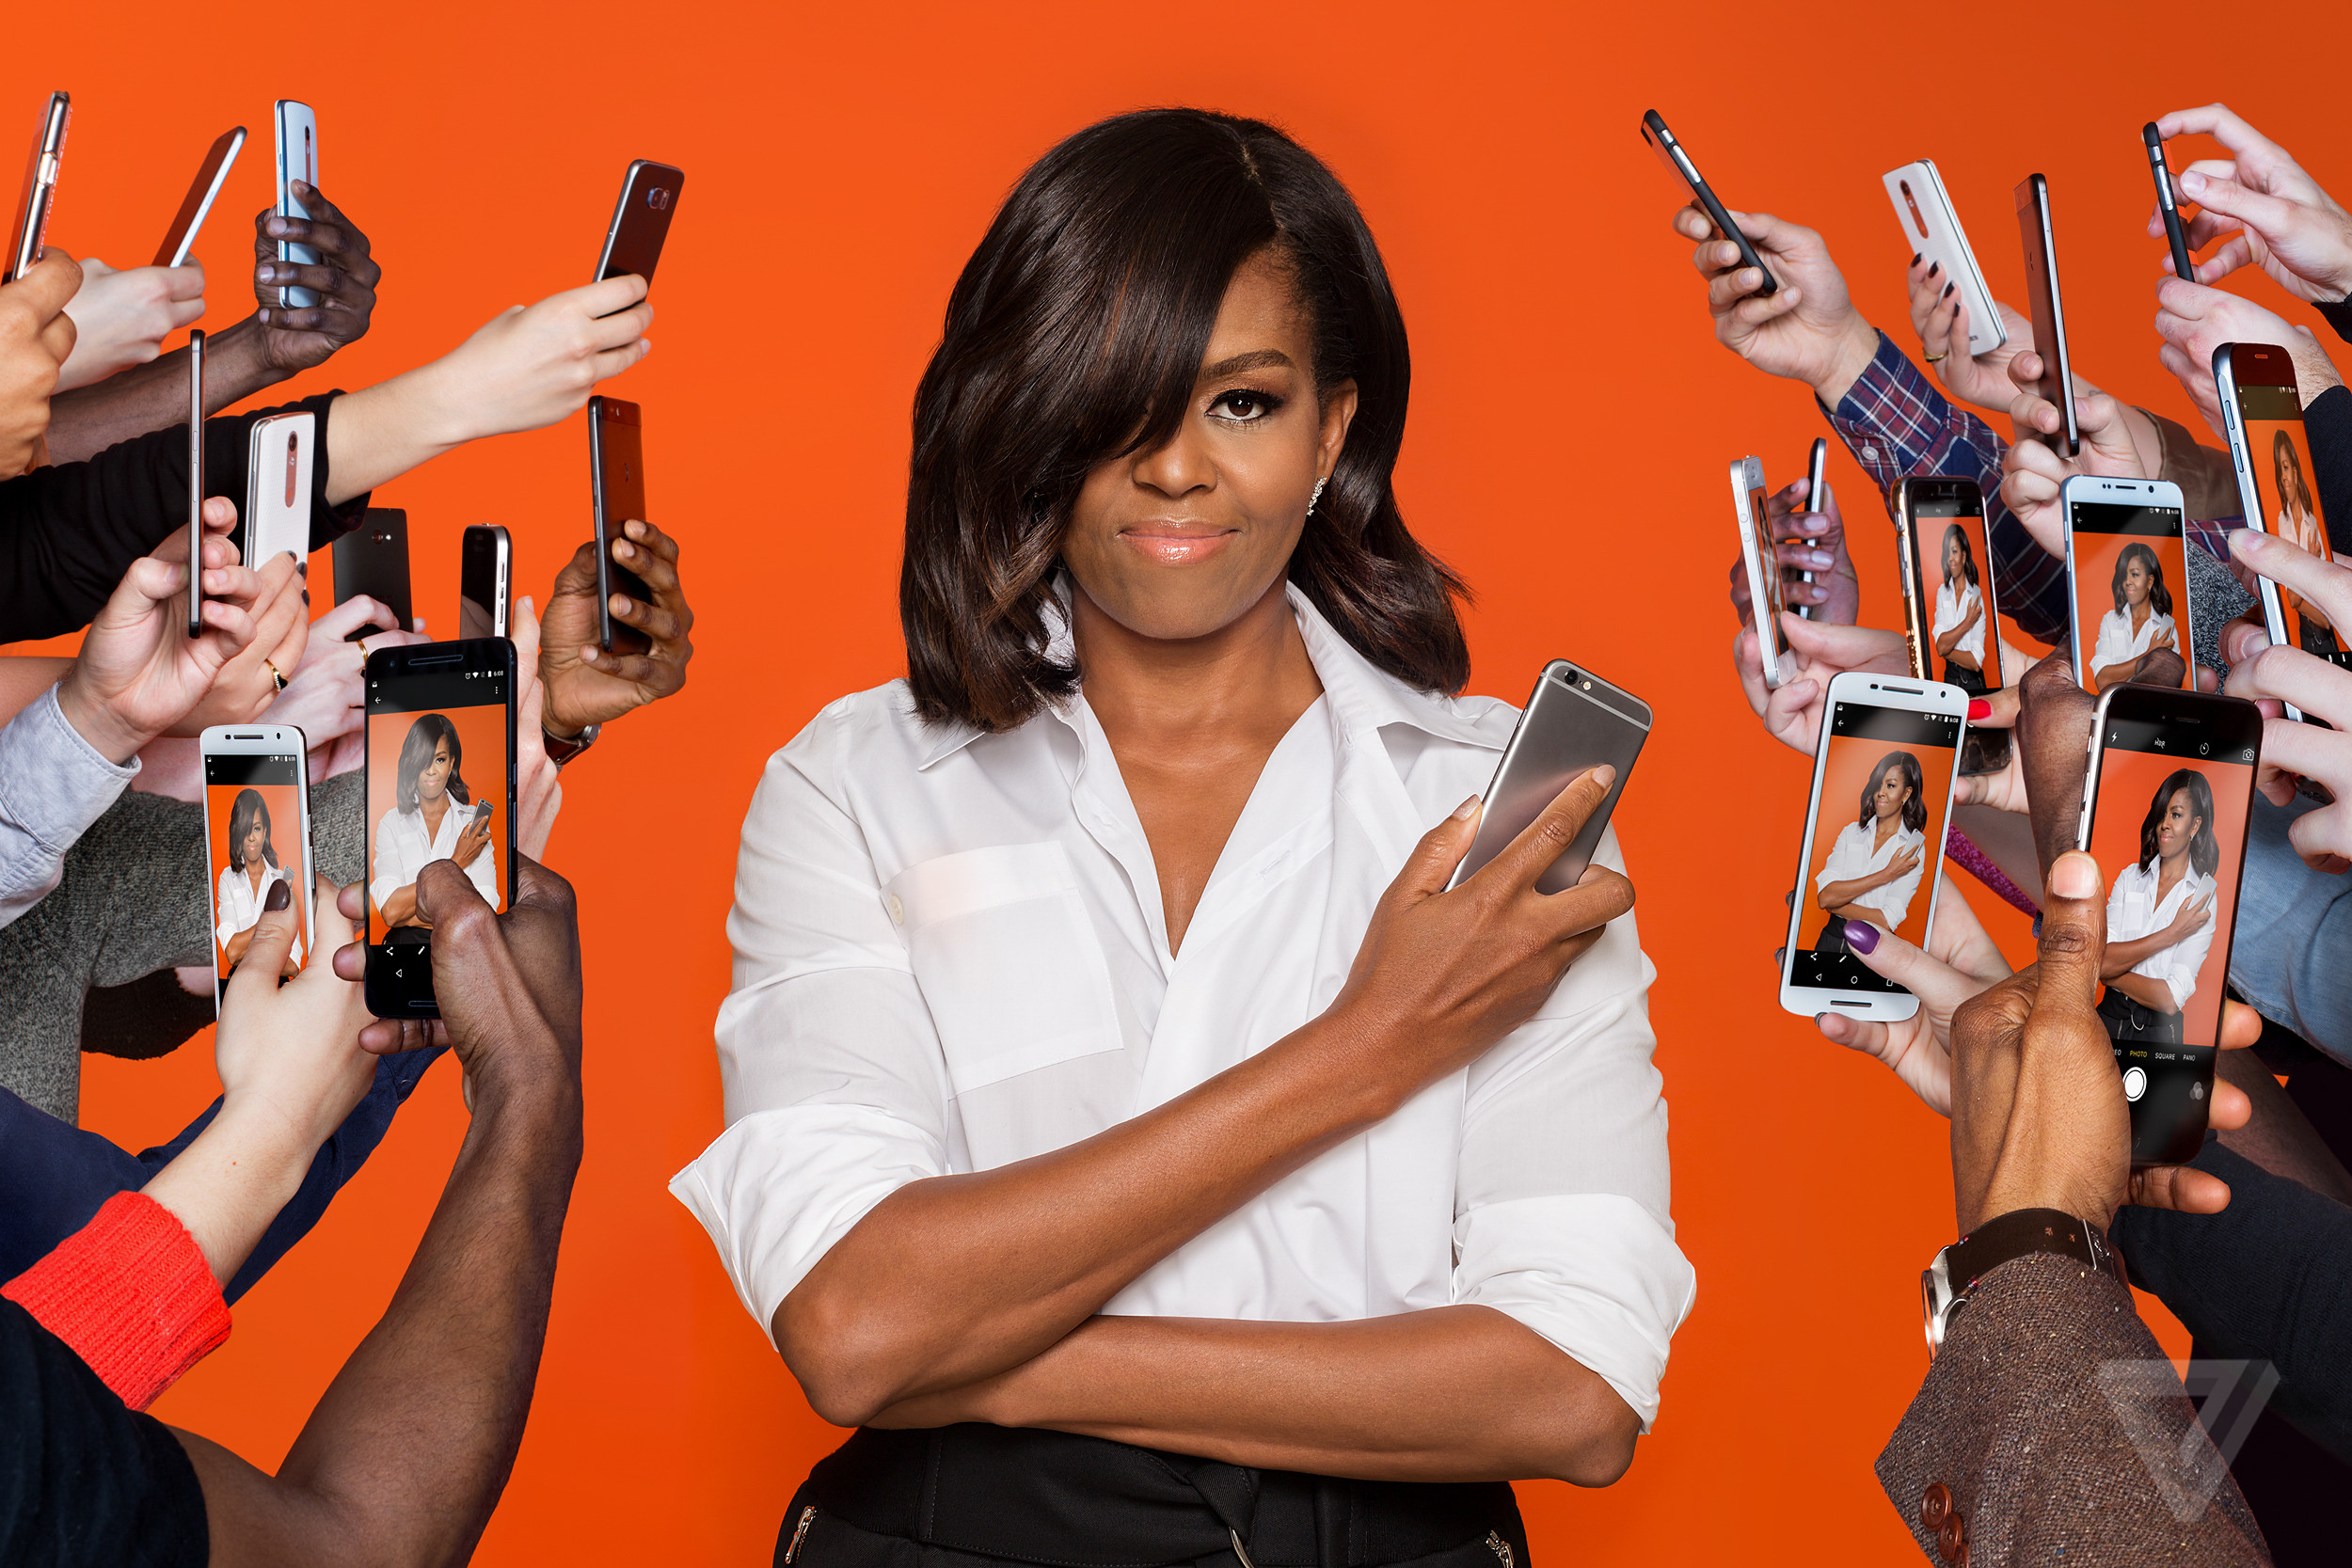 Portrait of Michelle Obama with phones around her